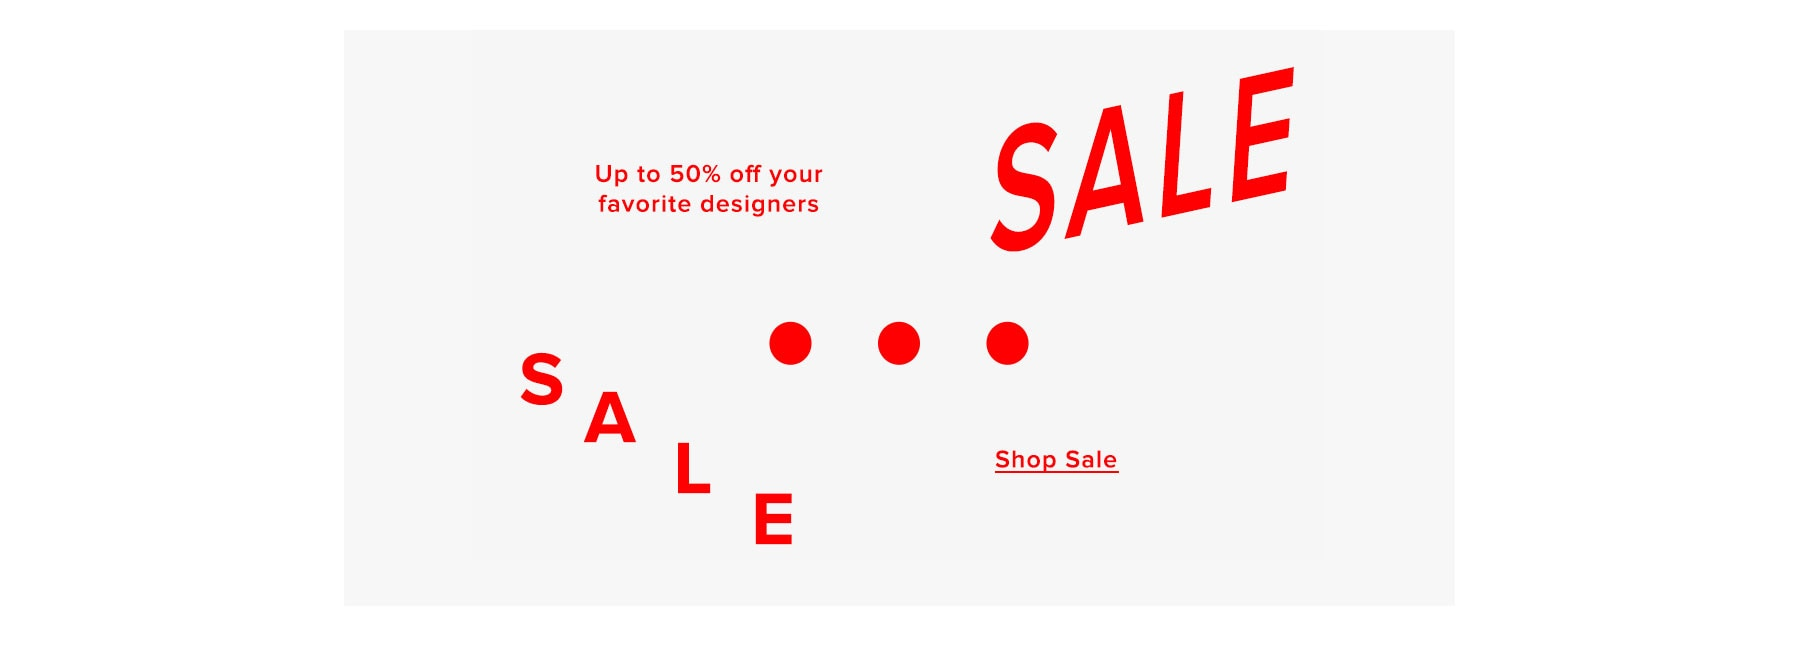 Sale. Up to 50% off your favorite designers. Shop now.